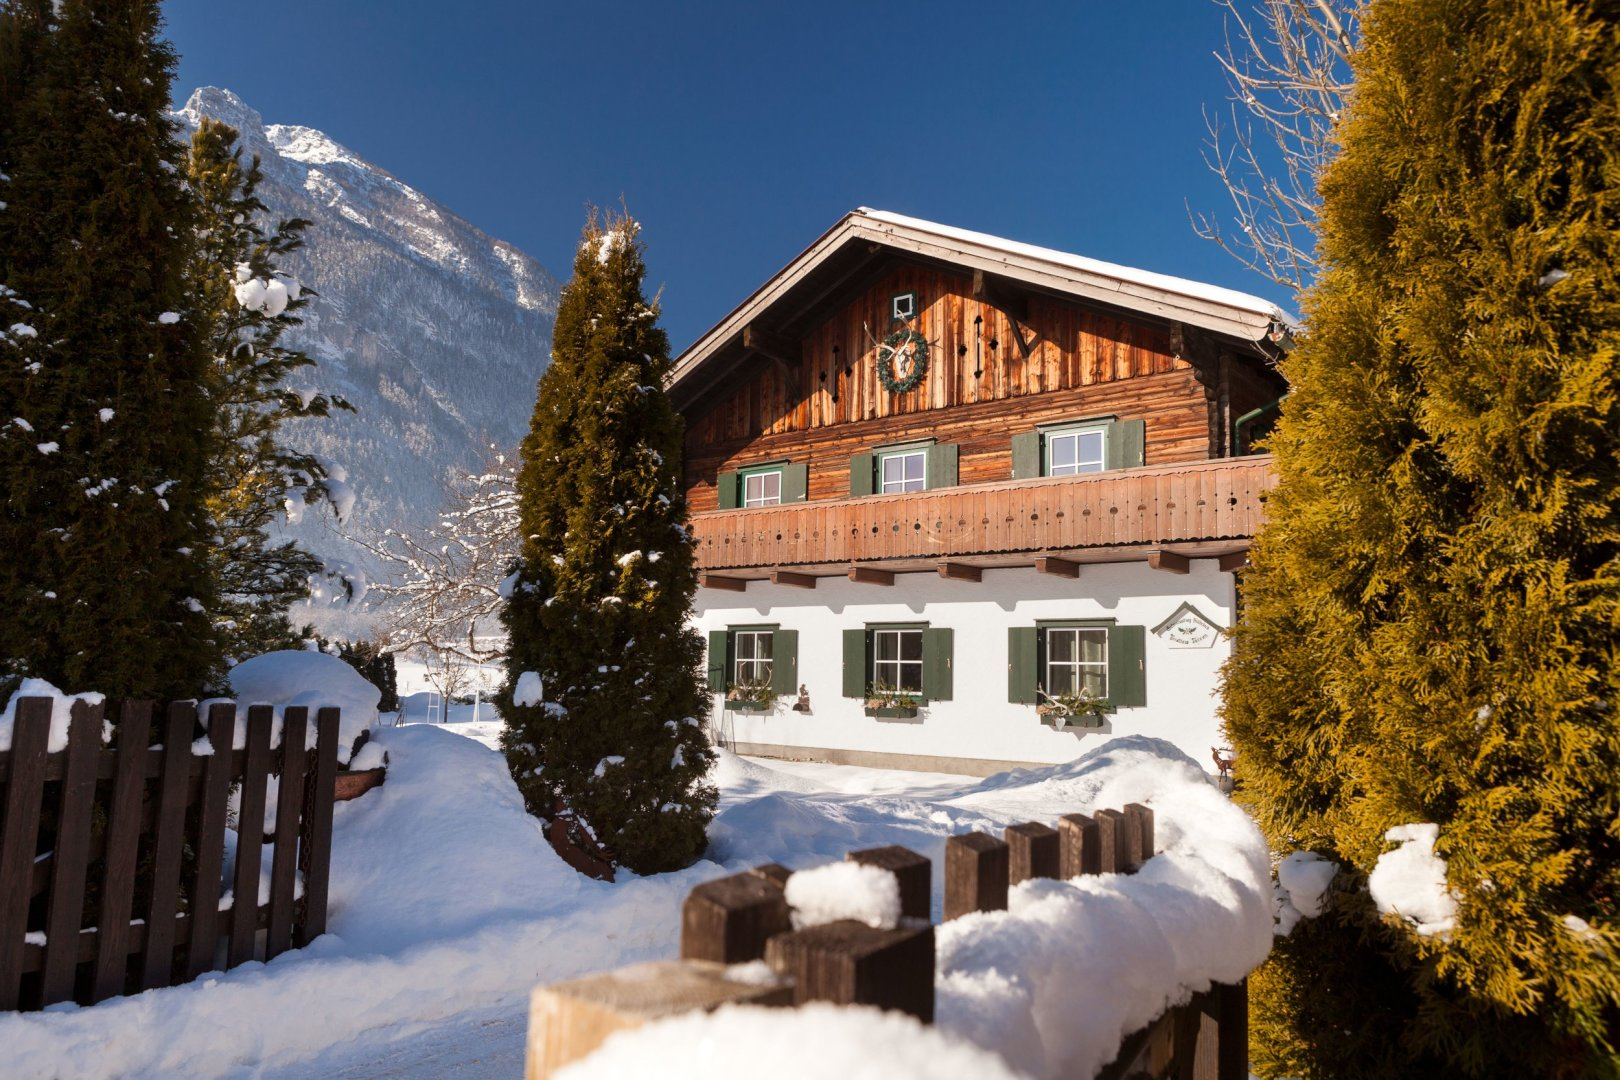 Chalet Forsthaus